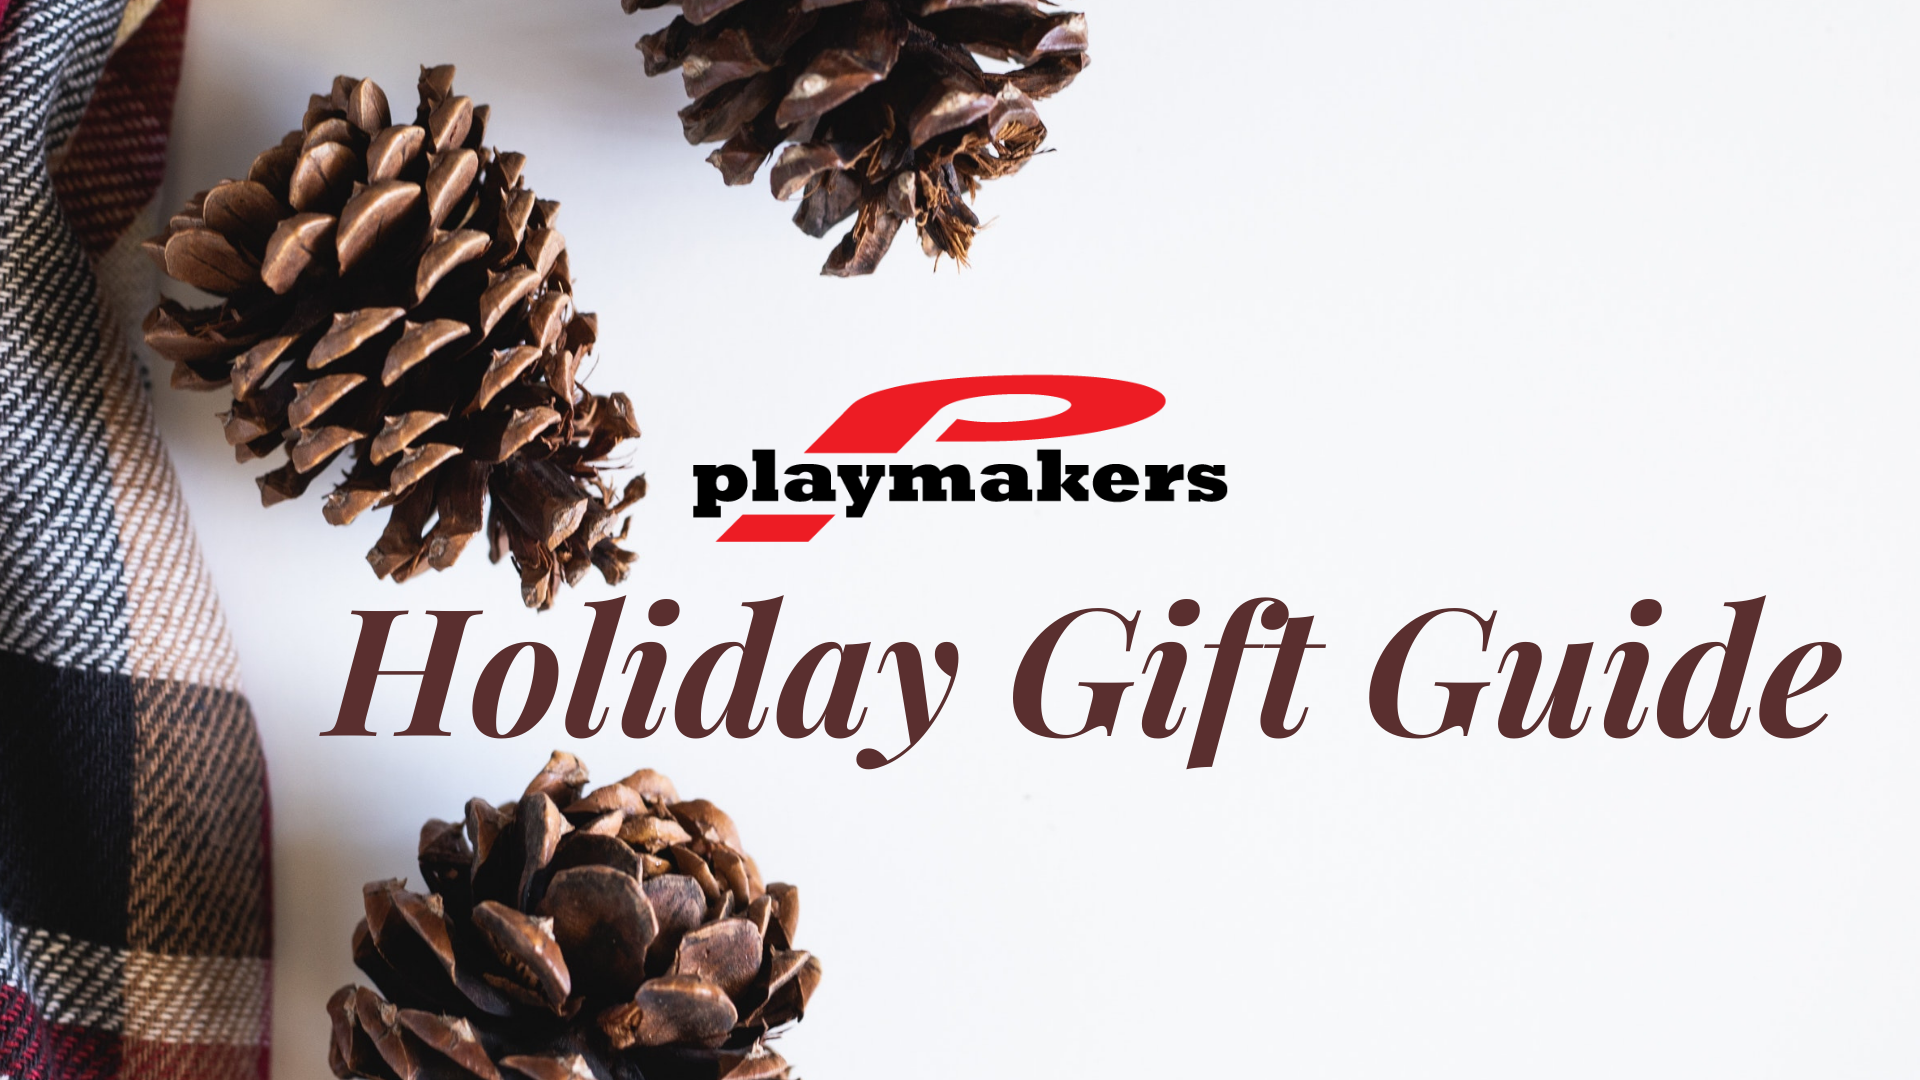 Playmakers Holiday Gift Guide